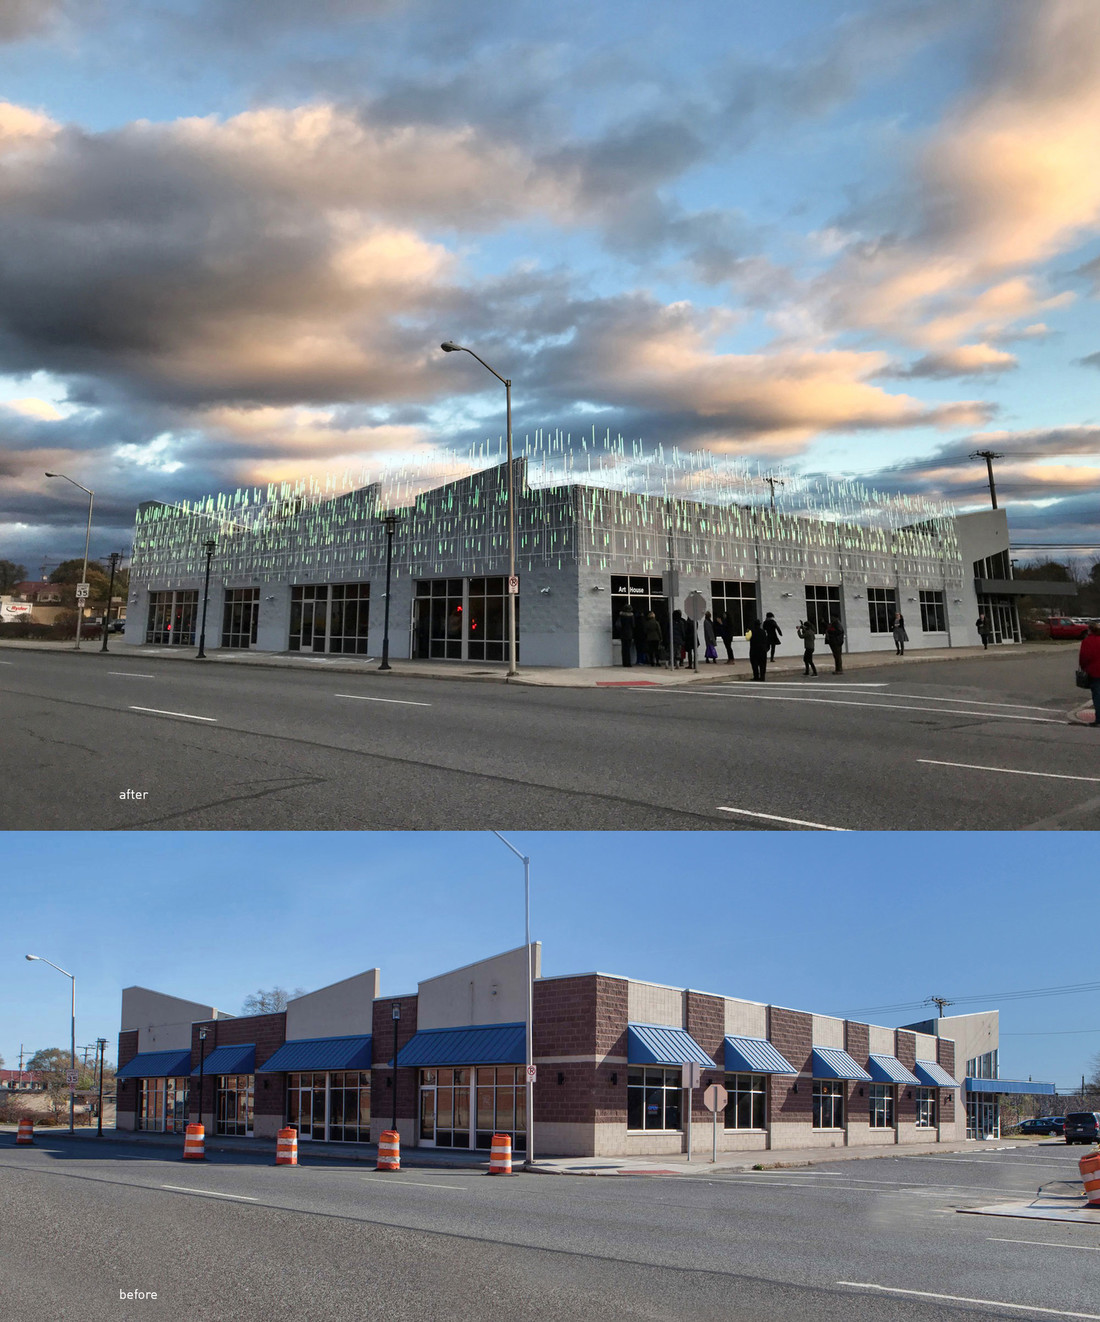 Before and after images of ArtHouse in Gary, Indiana